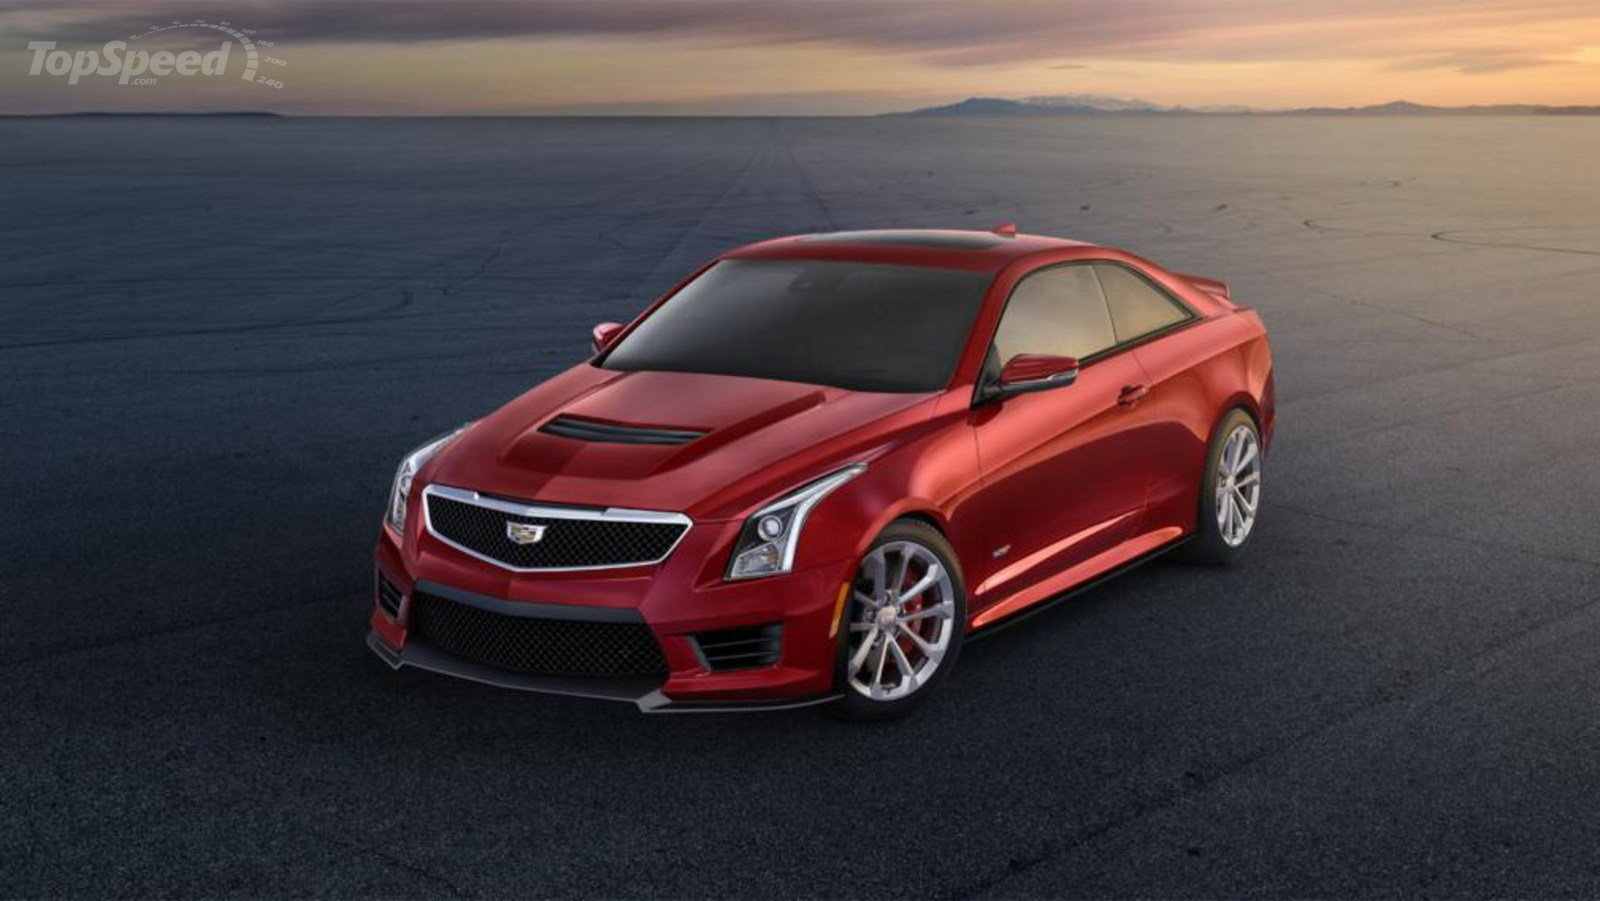 2016 cadillac ats v coupe review top speed. Black Bedroom Furniture Sets. Home Design Ideas